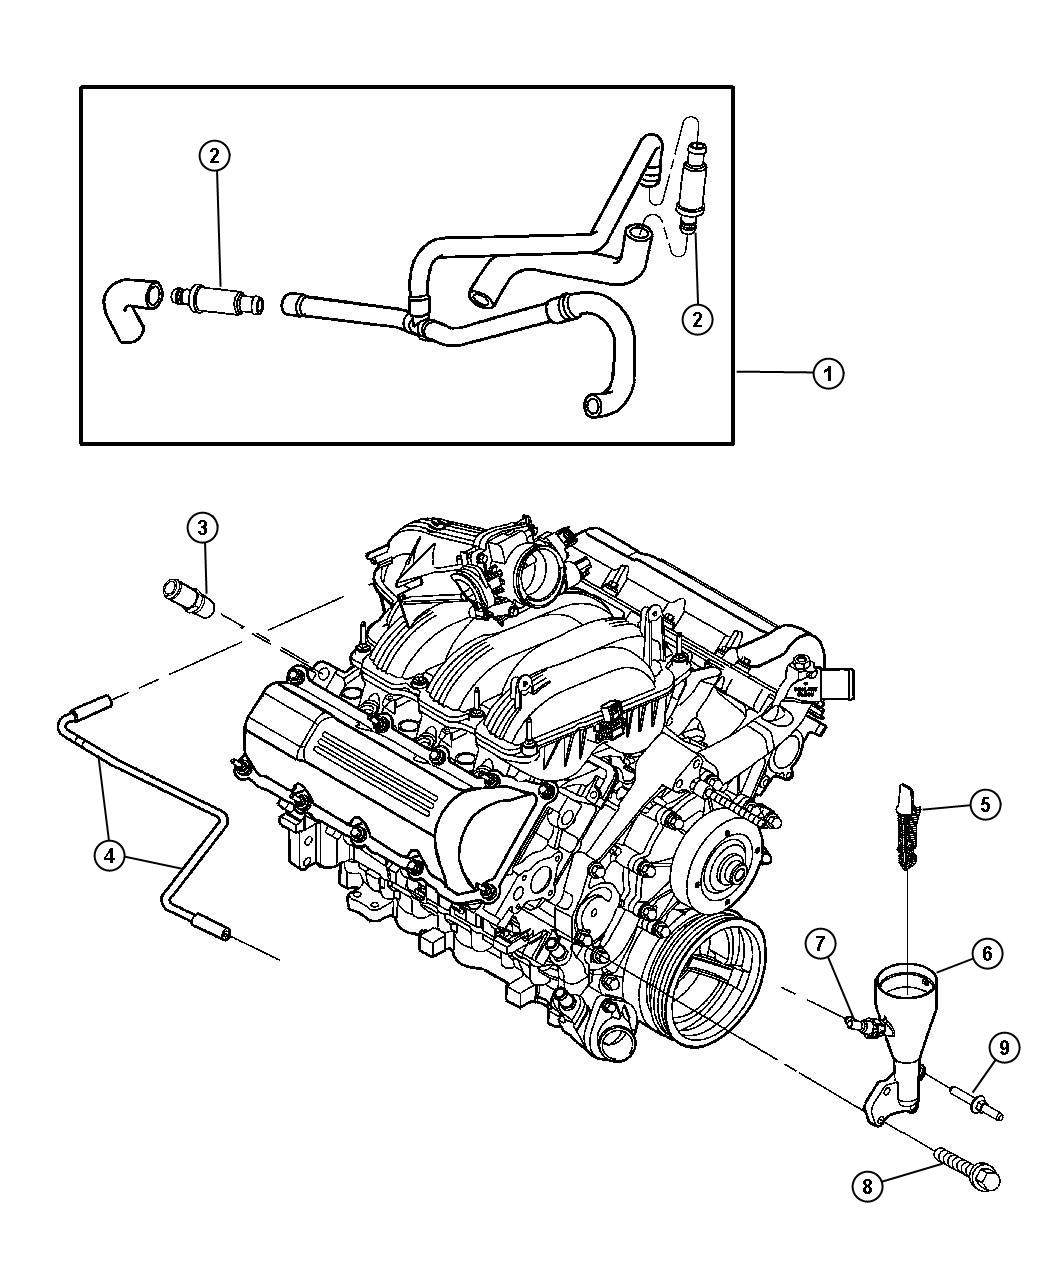 2004 Jeep Liberty Hose. Cylinder head to air cleaner